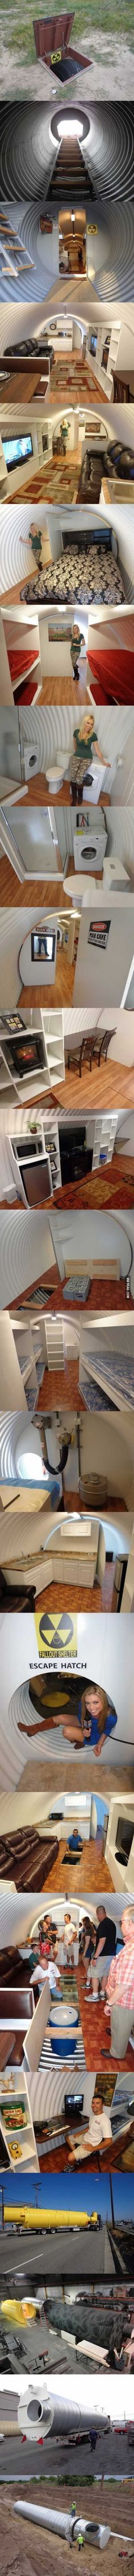 A fall out shelter that is better than peoples houses